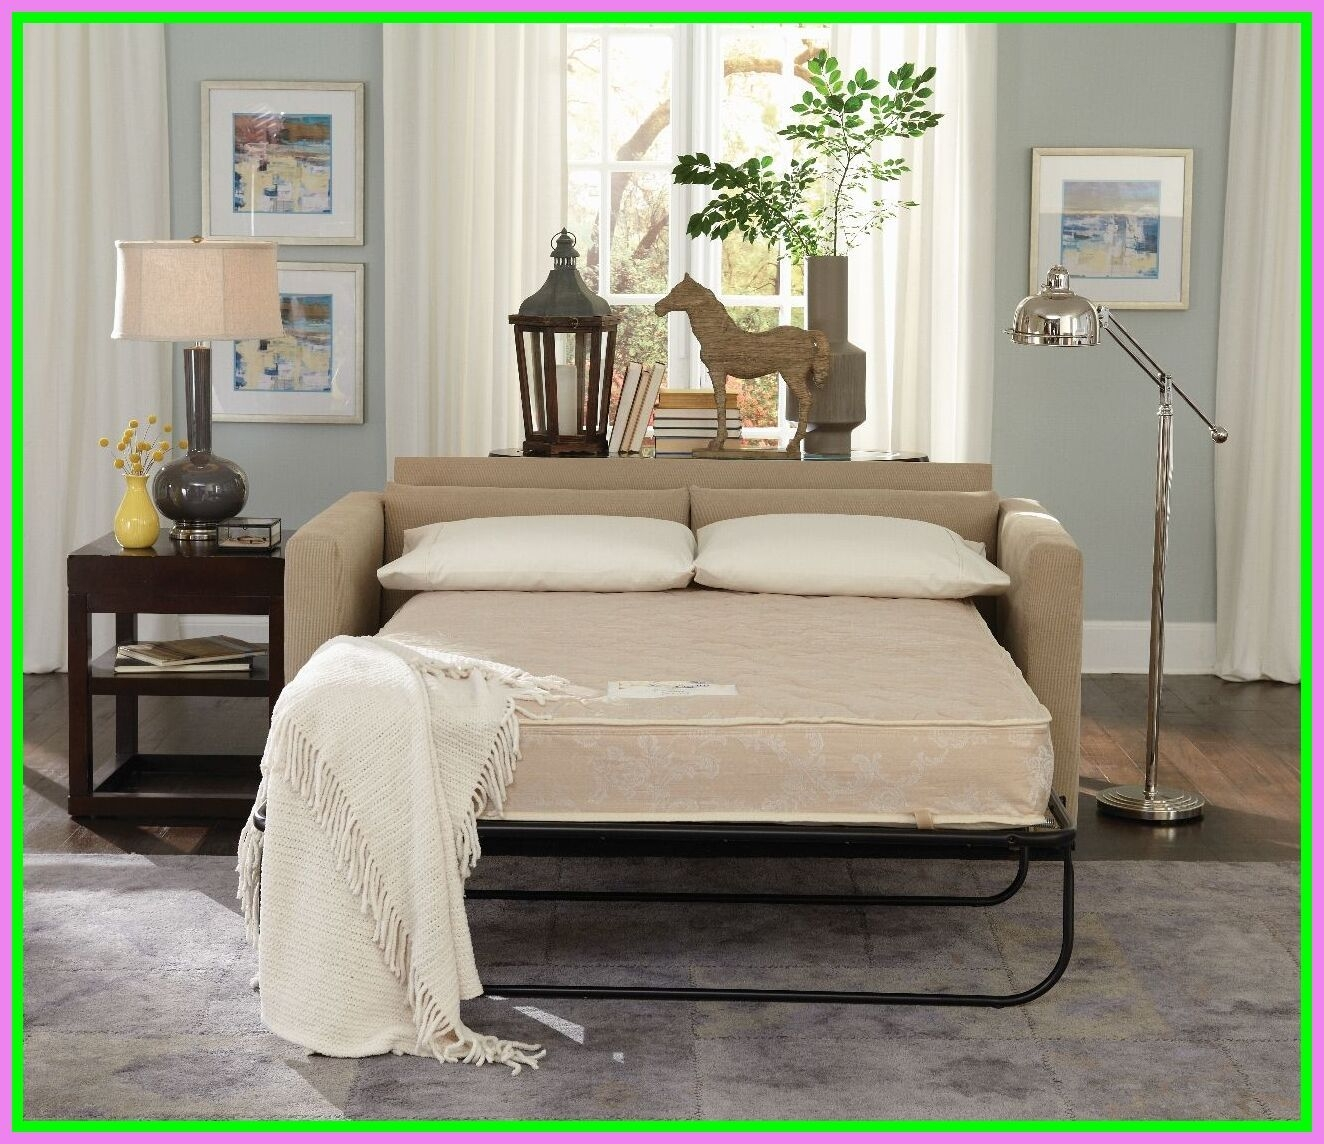 Delicieux Pull Out Sleeper Sofa